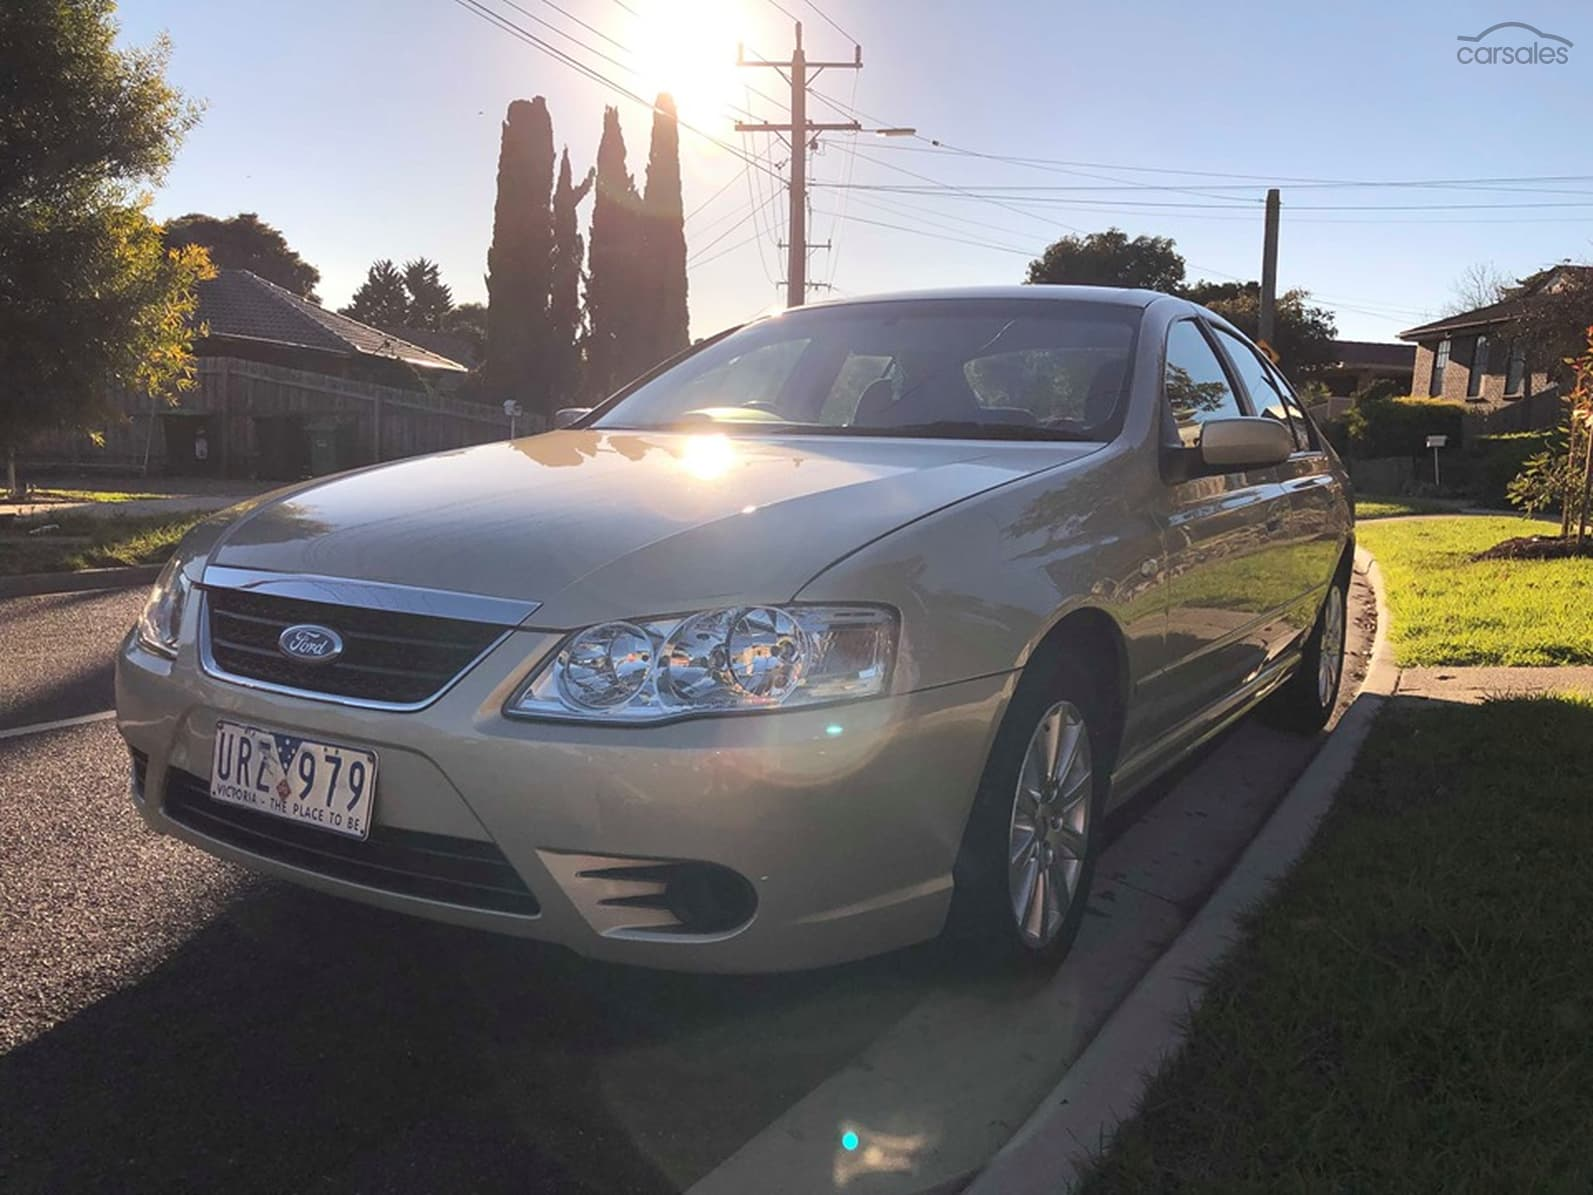 2006 Ford Fairmont BF Mk II Auto-SSE-AD-6166354 - carsales